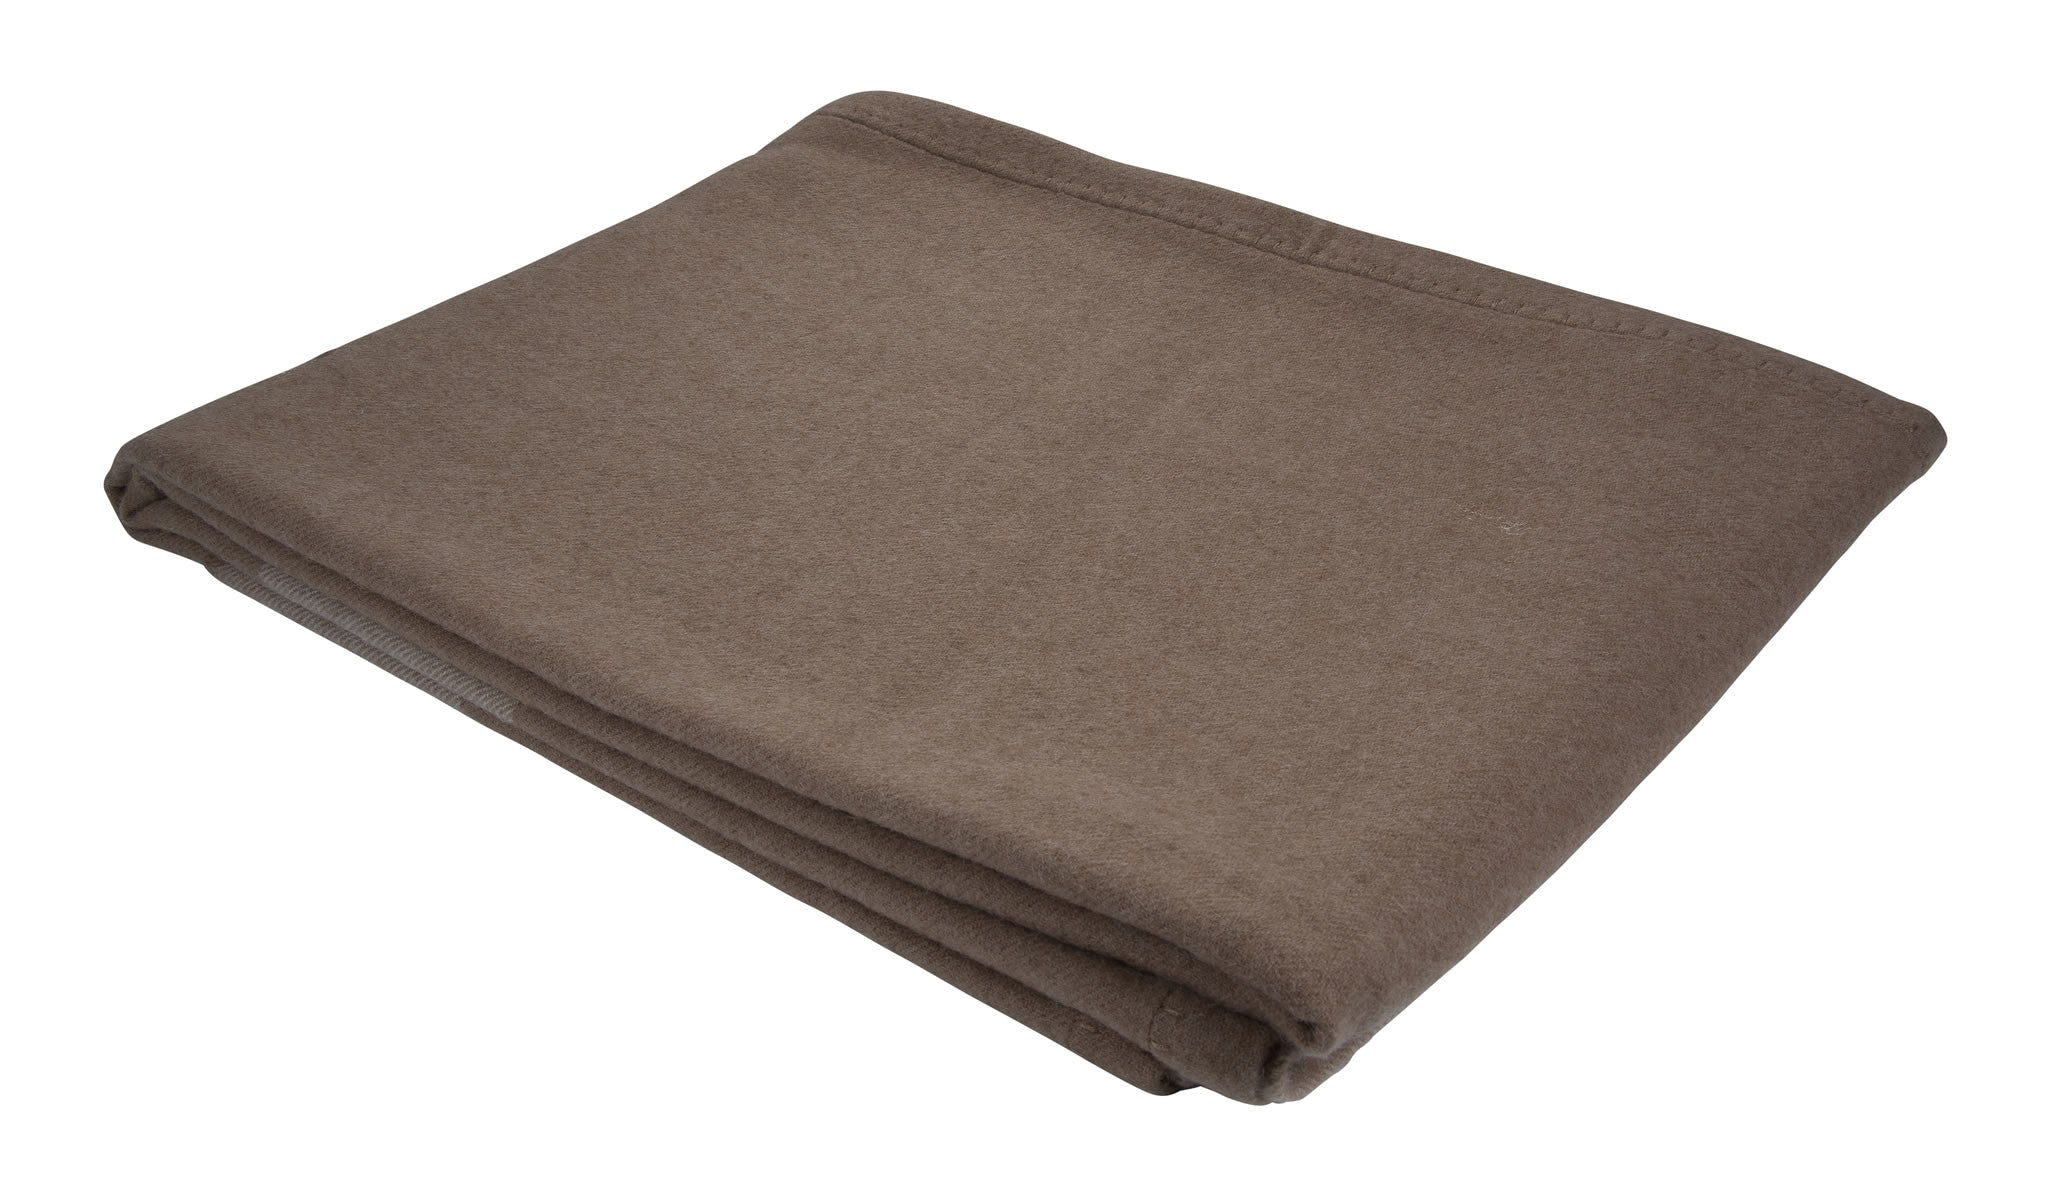 Orion Camel Hair Throw